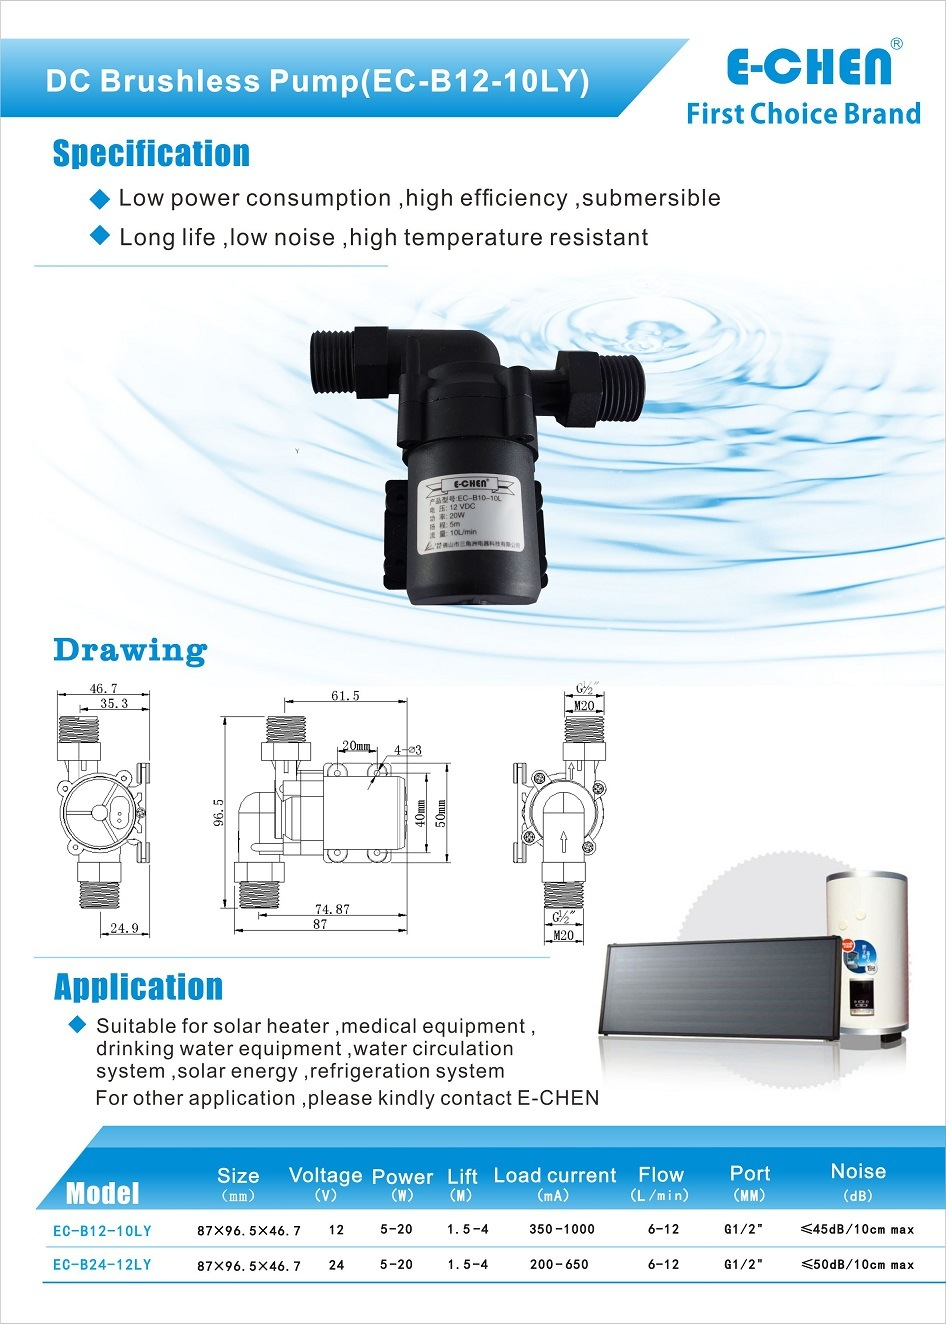 DC Brushless Pump EC-B12-10LY